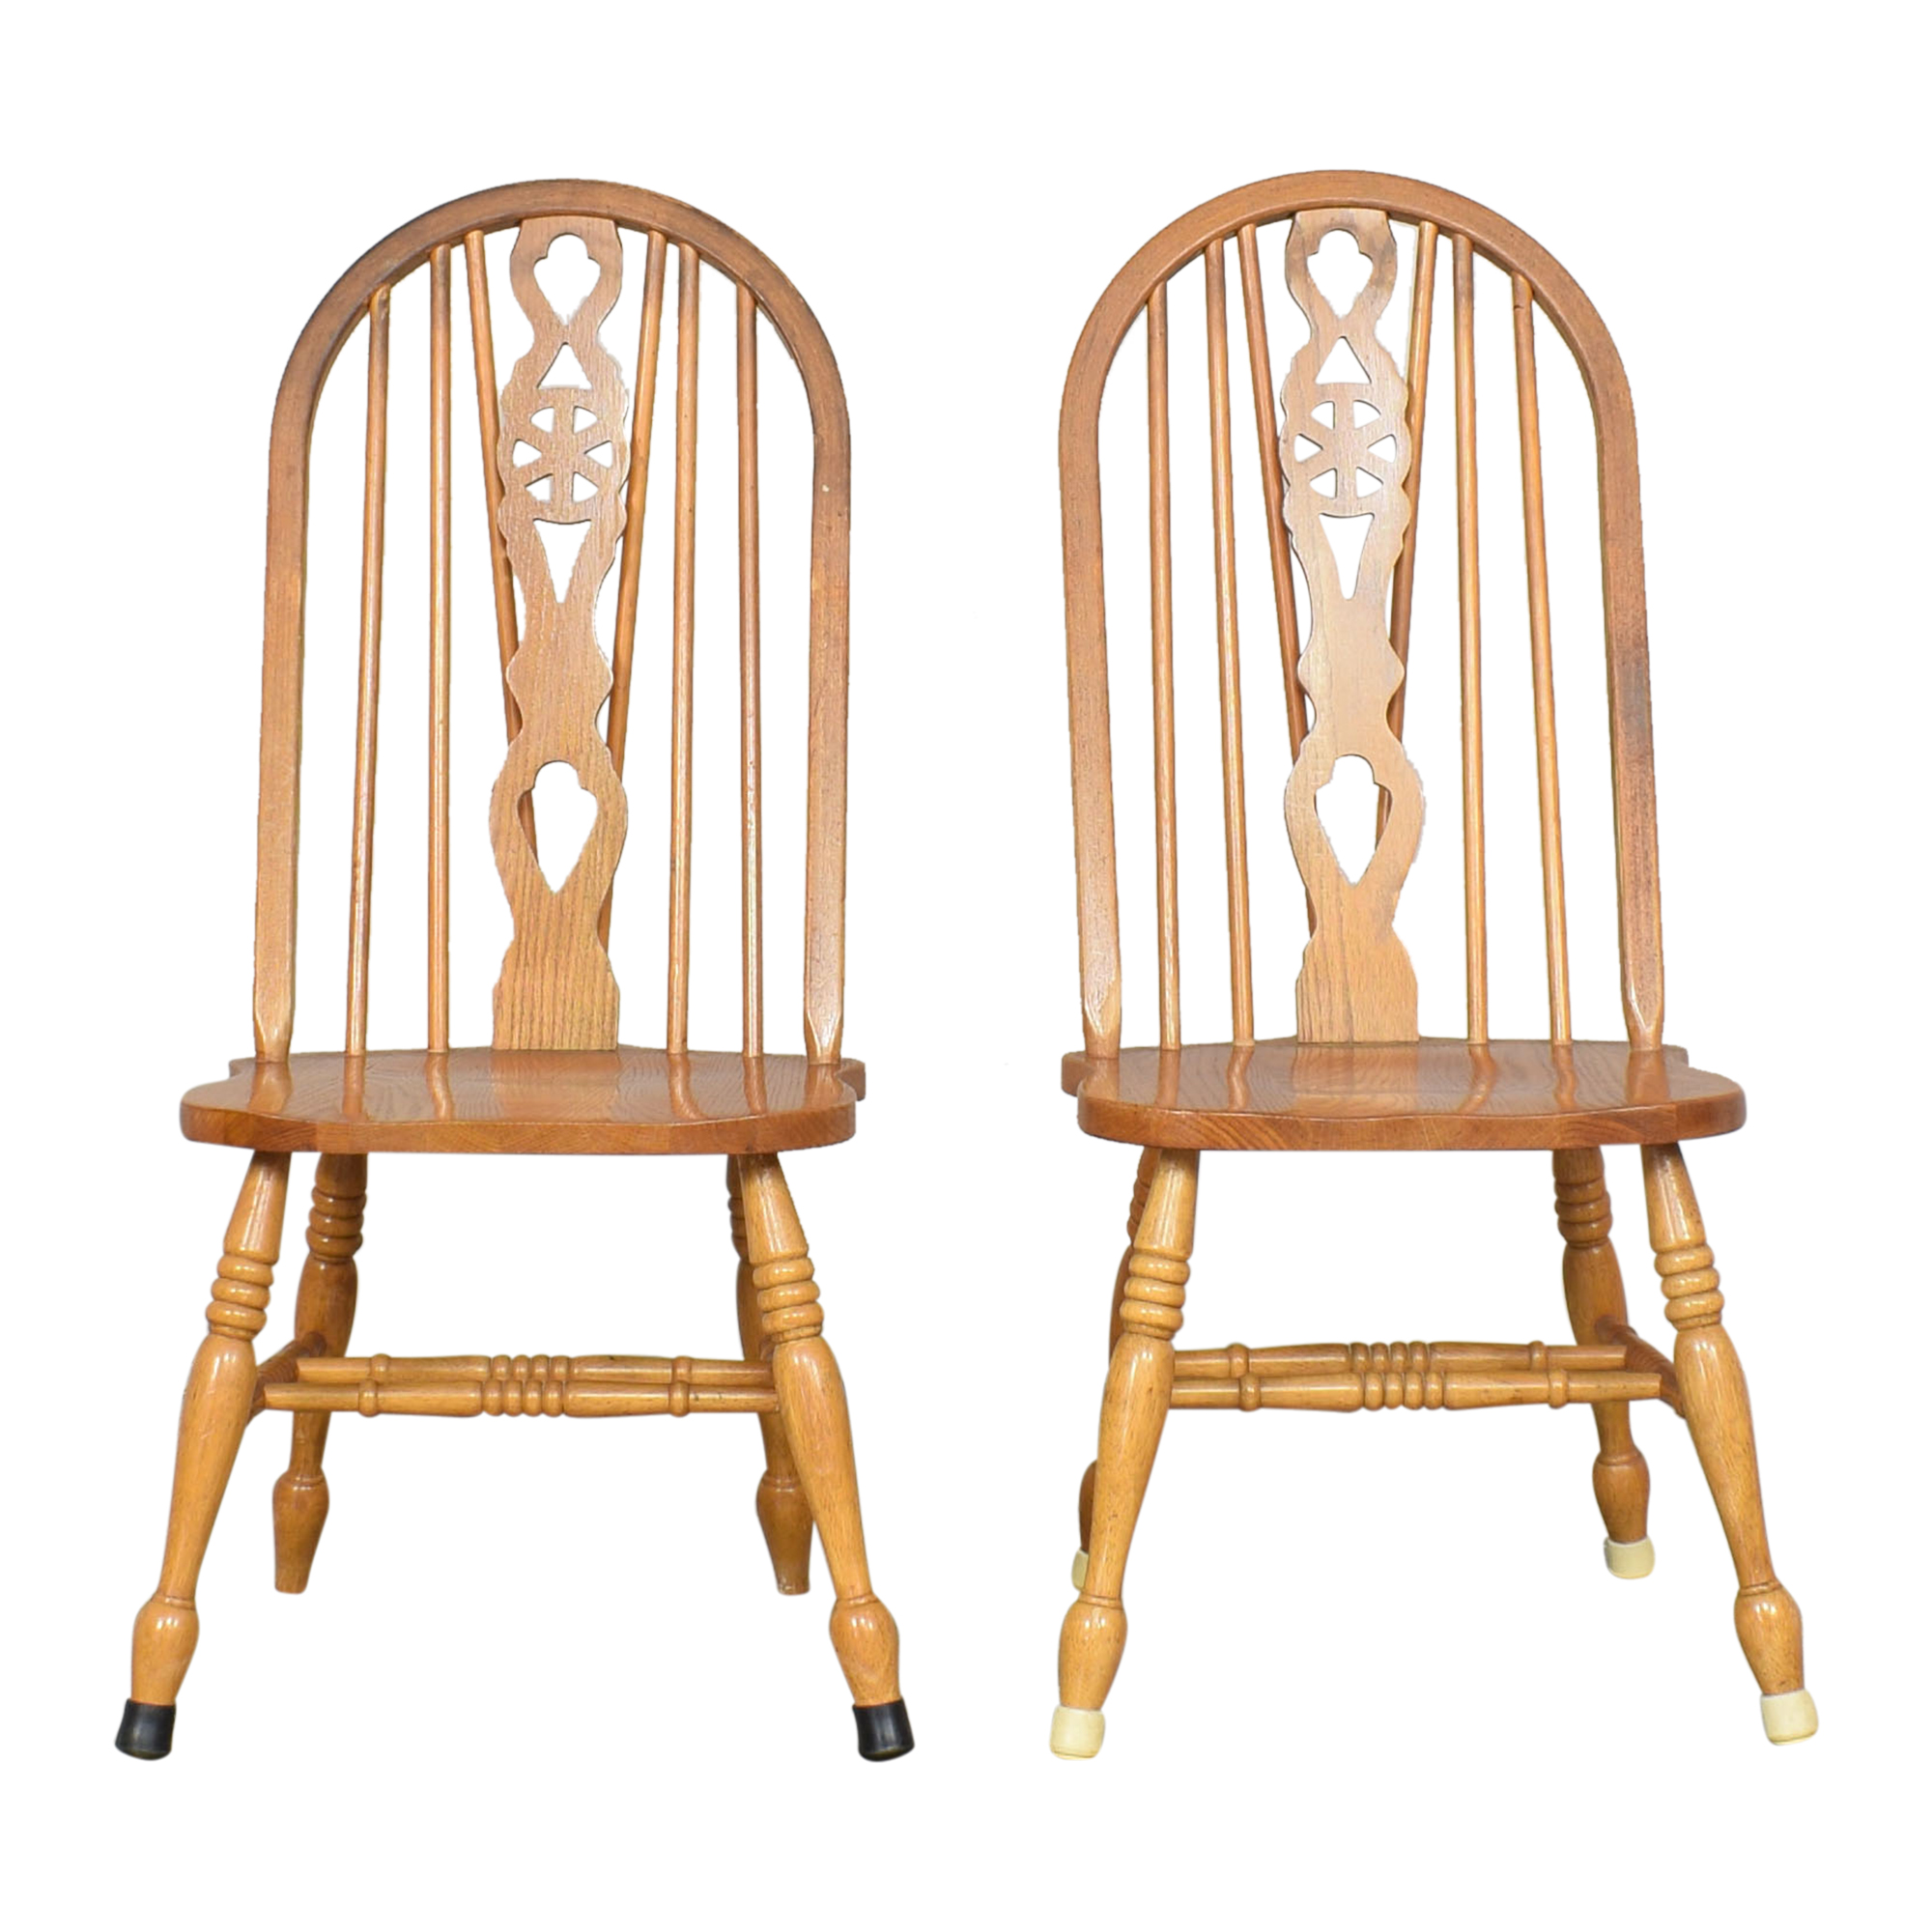 Fiddleback Windsor Dining Chairs price